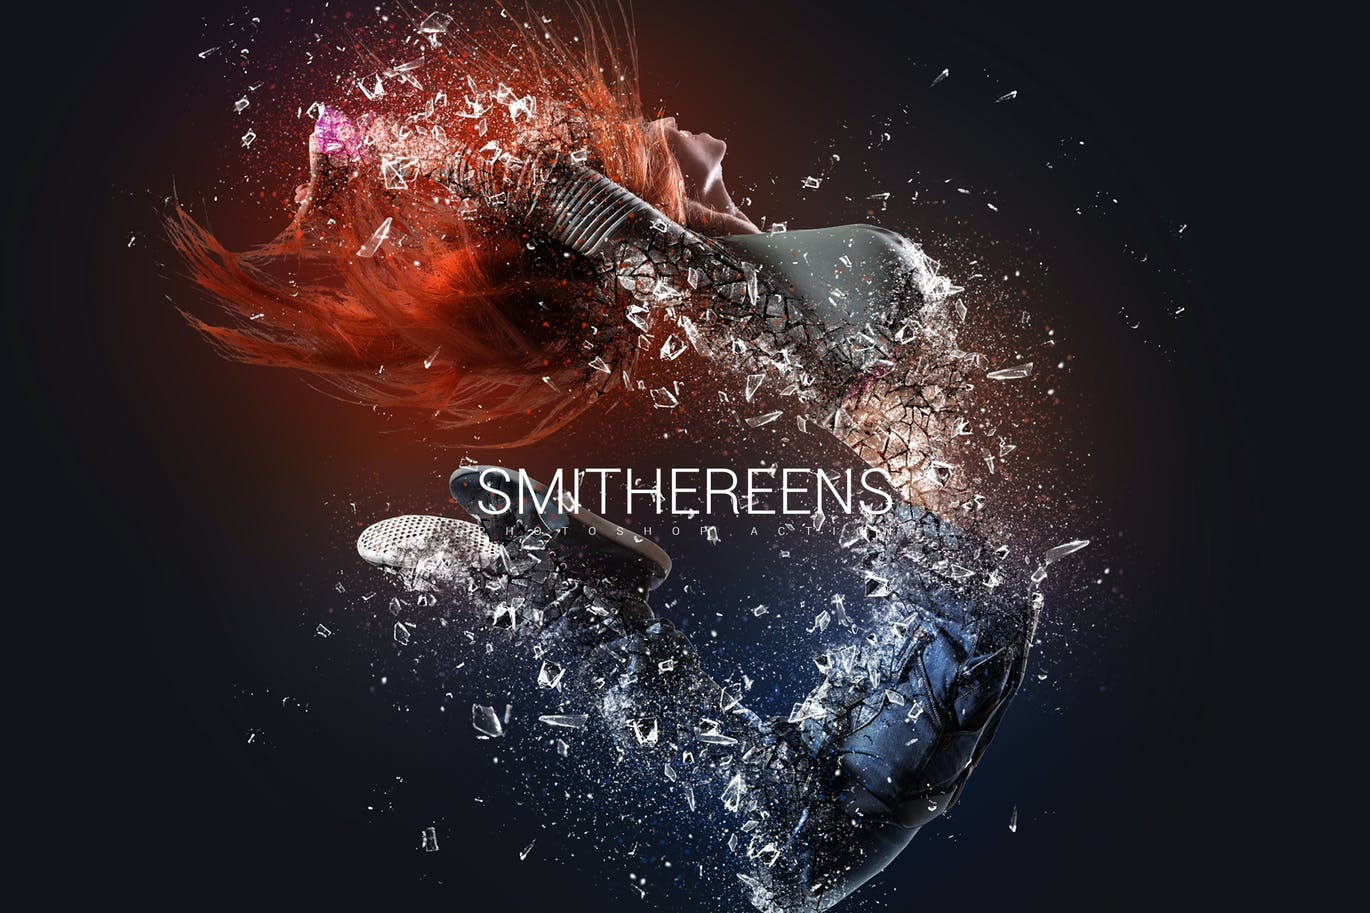 碎片化塑料照片特效Photoshop动作 Smithereens Photoshop Action设计素材模板